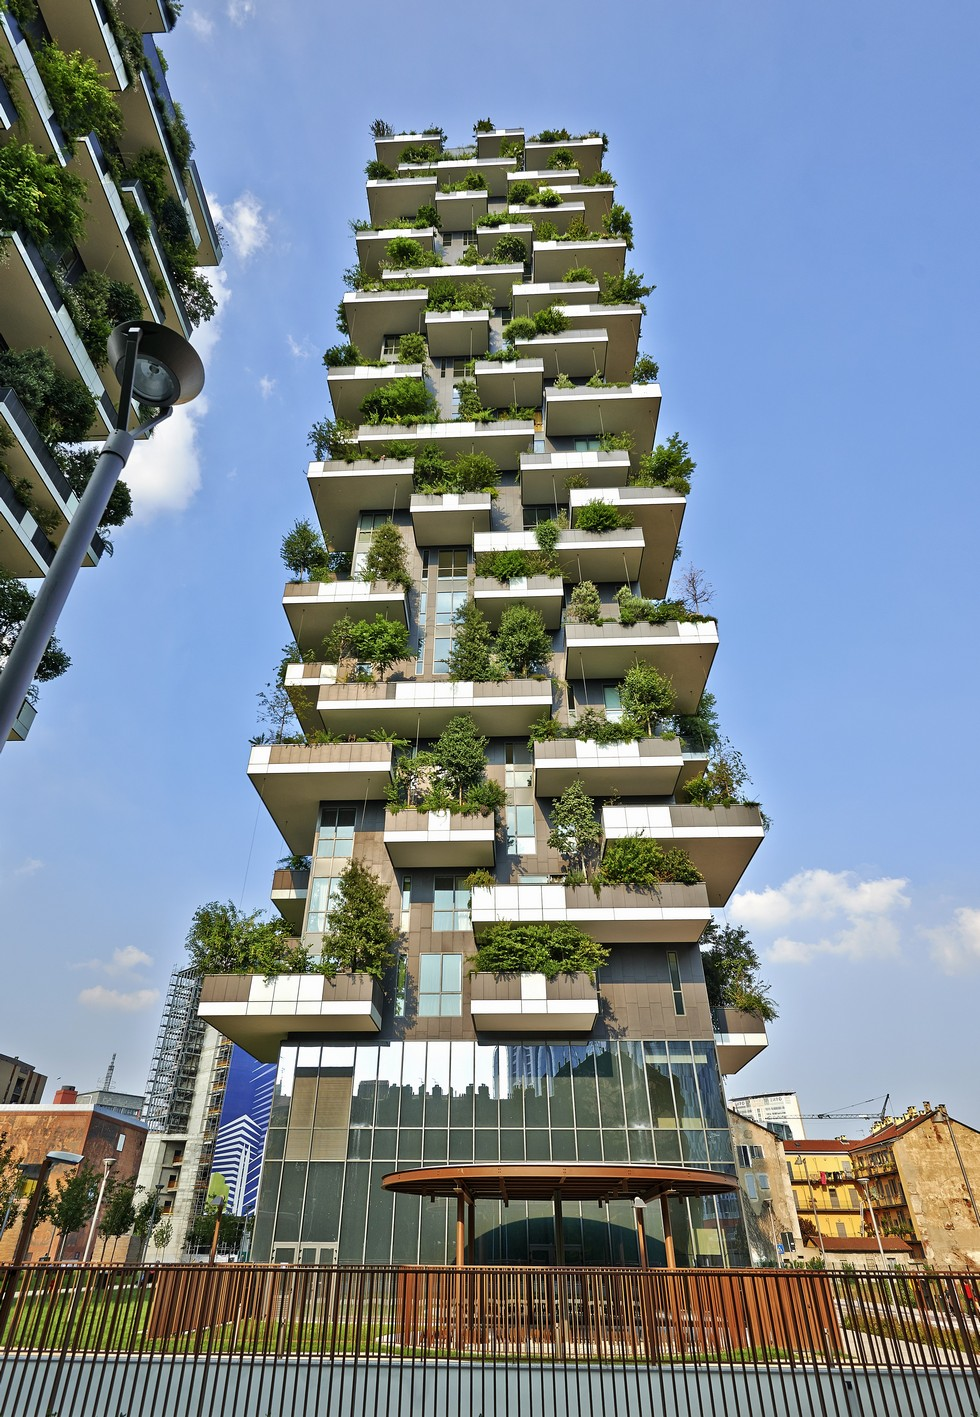 Milan - Vertical Forest Tower - Architect Stefano Boeri